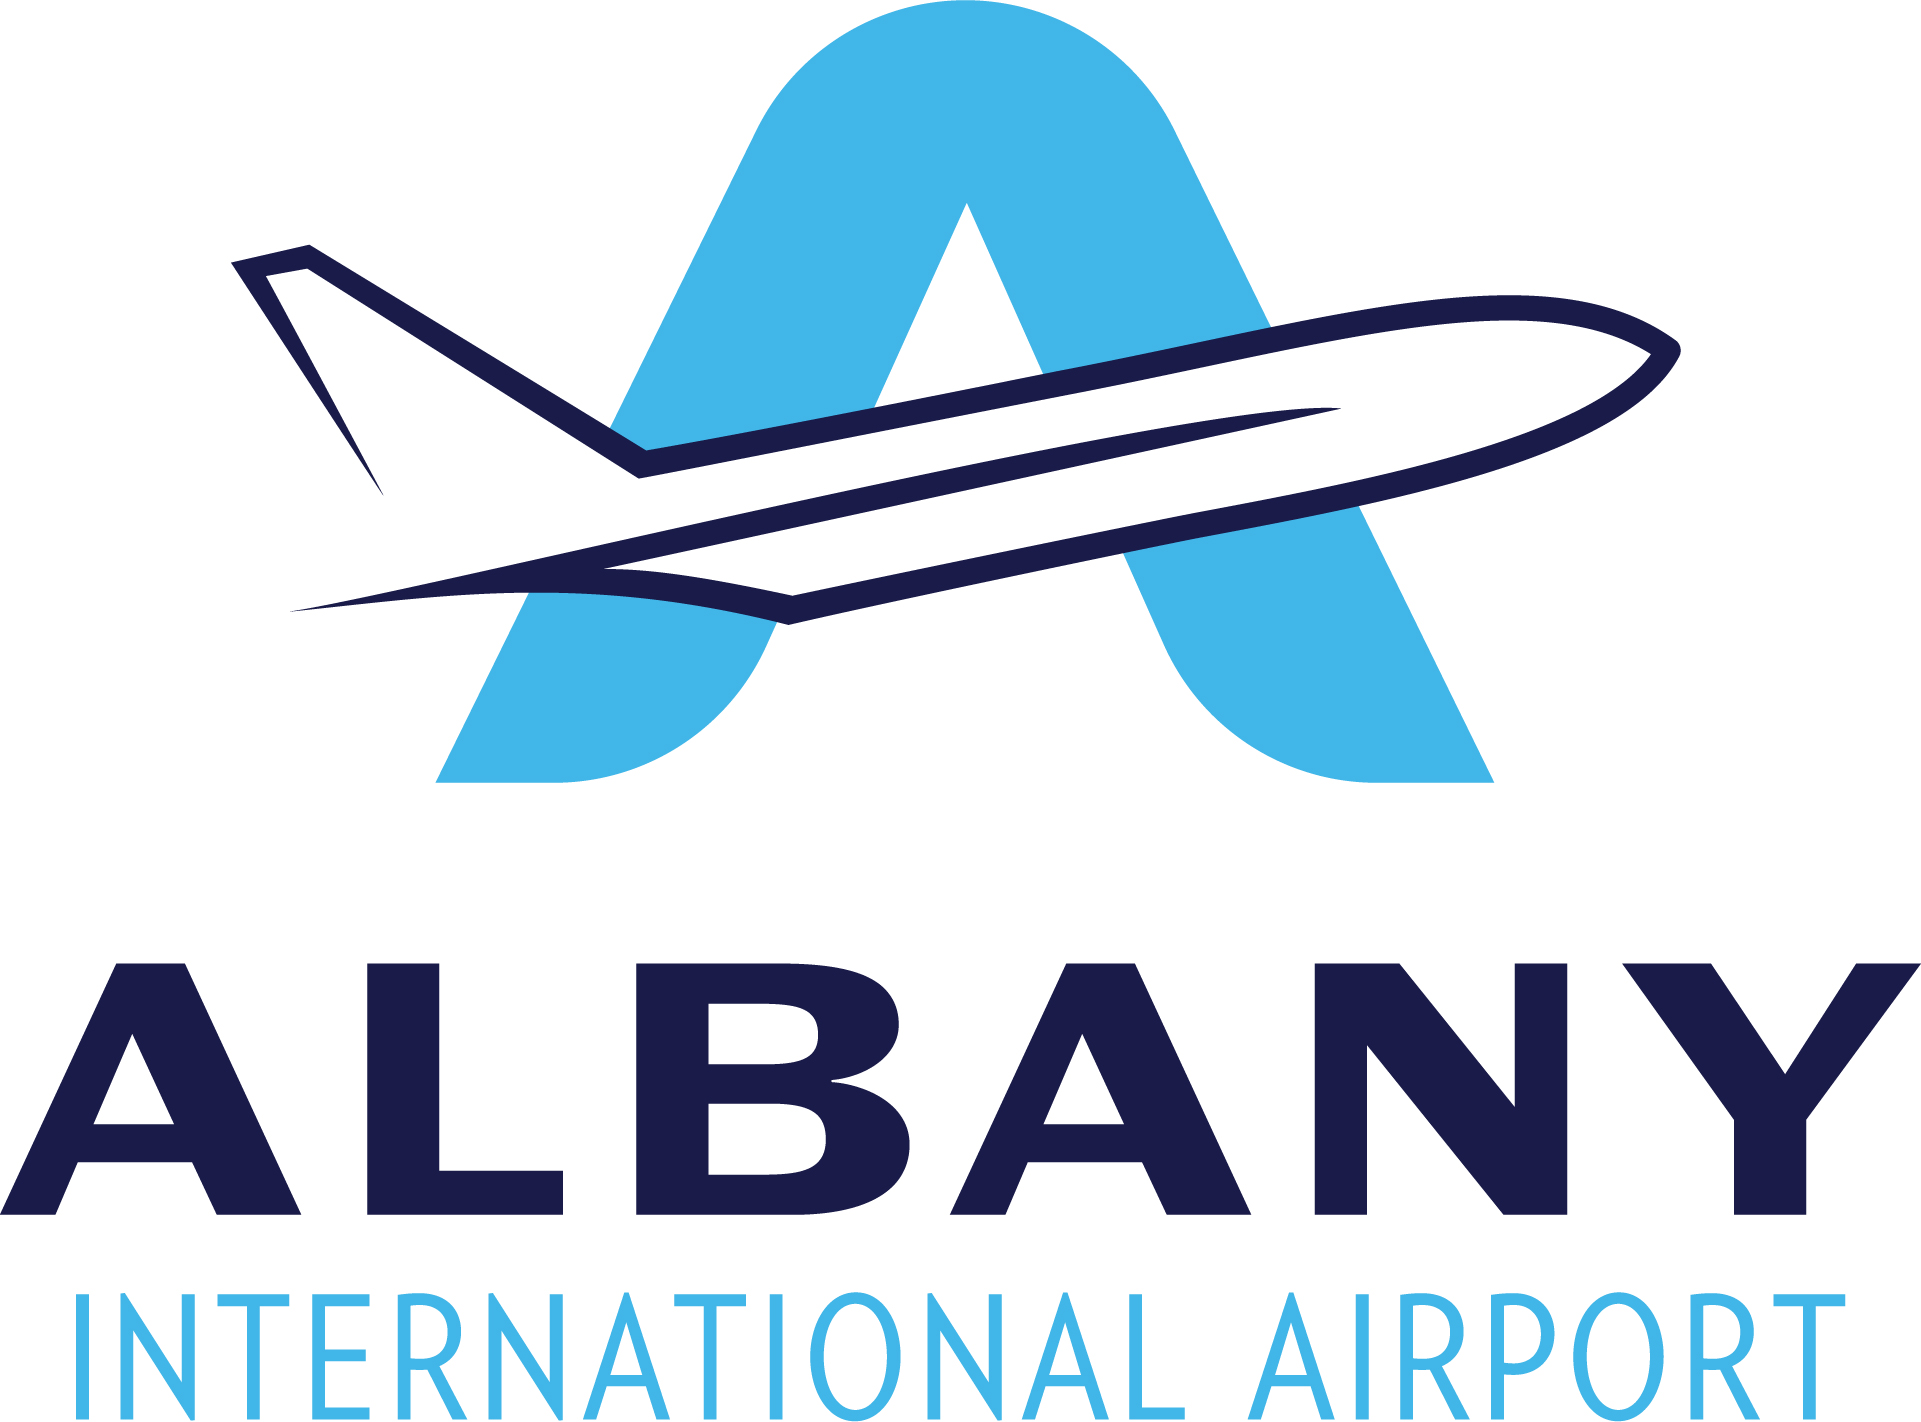 Organization logo of Albany County Airport Authority